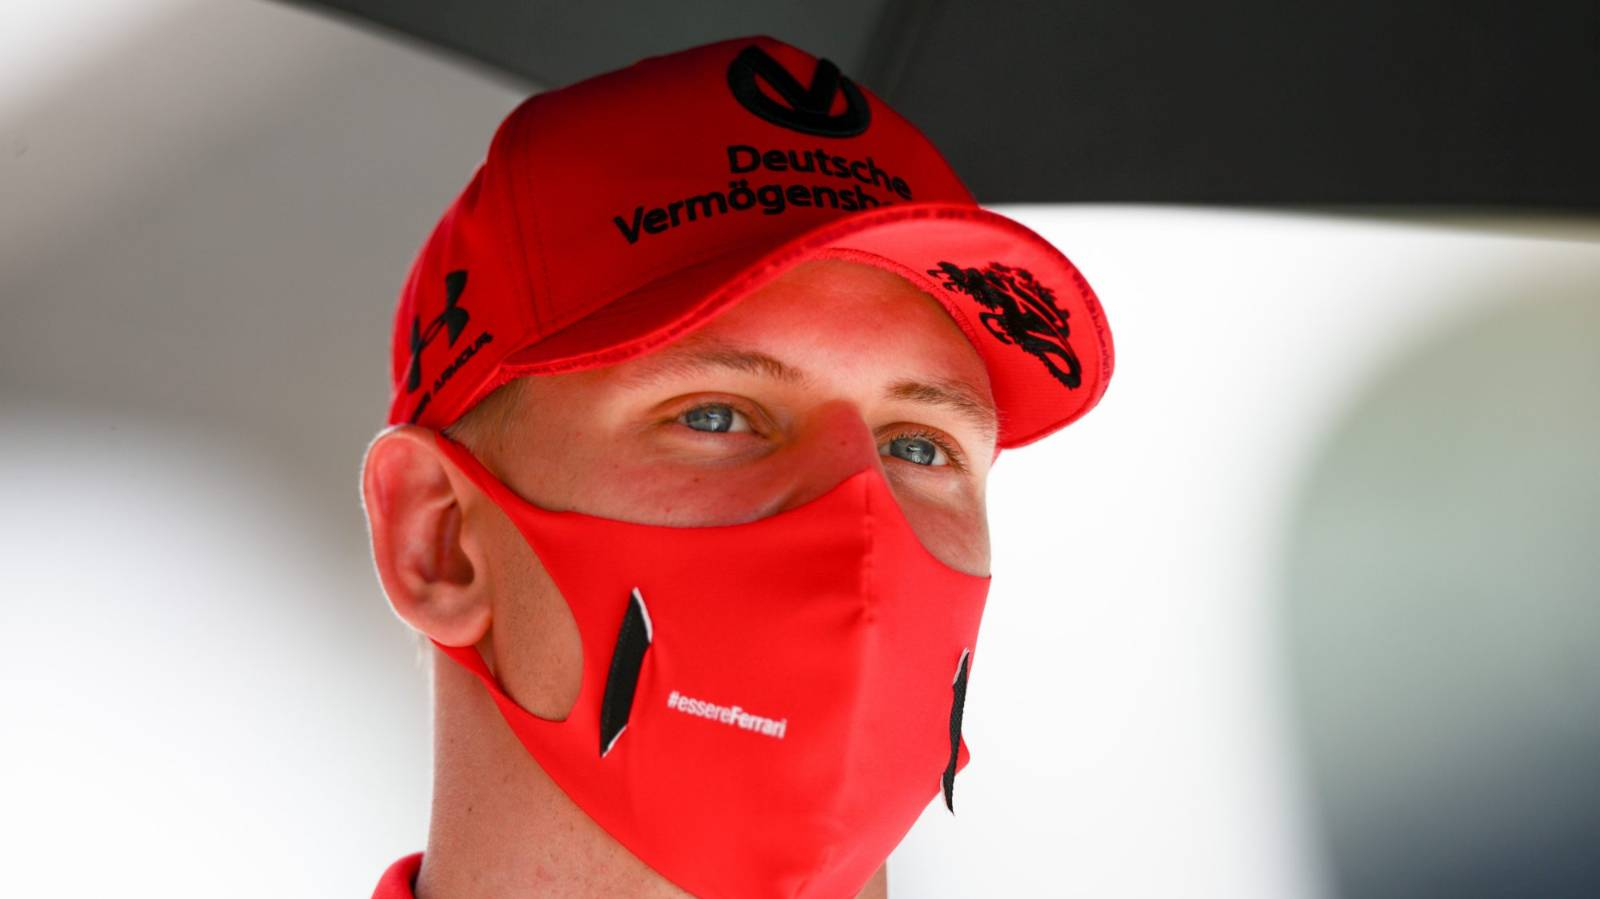 Mick Schumacher confirmed for F1 seat with Haas in 2021